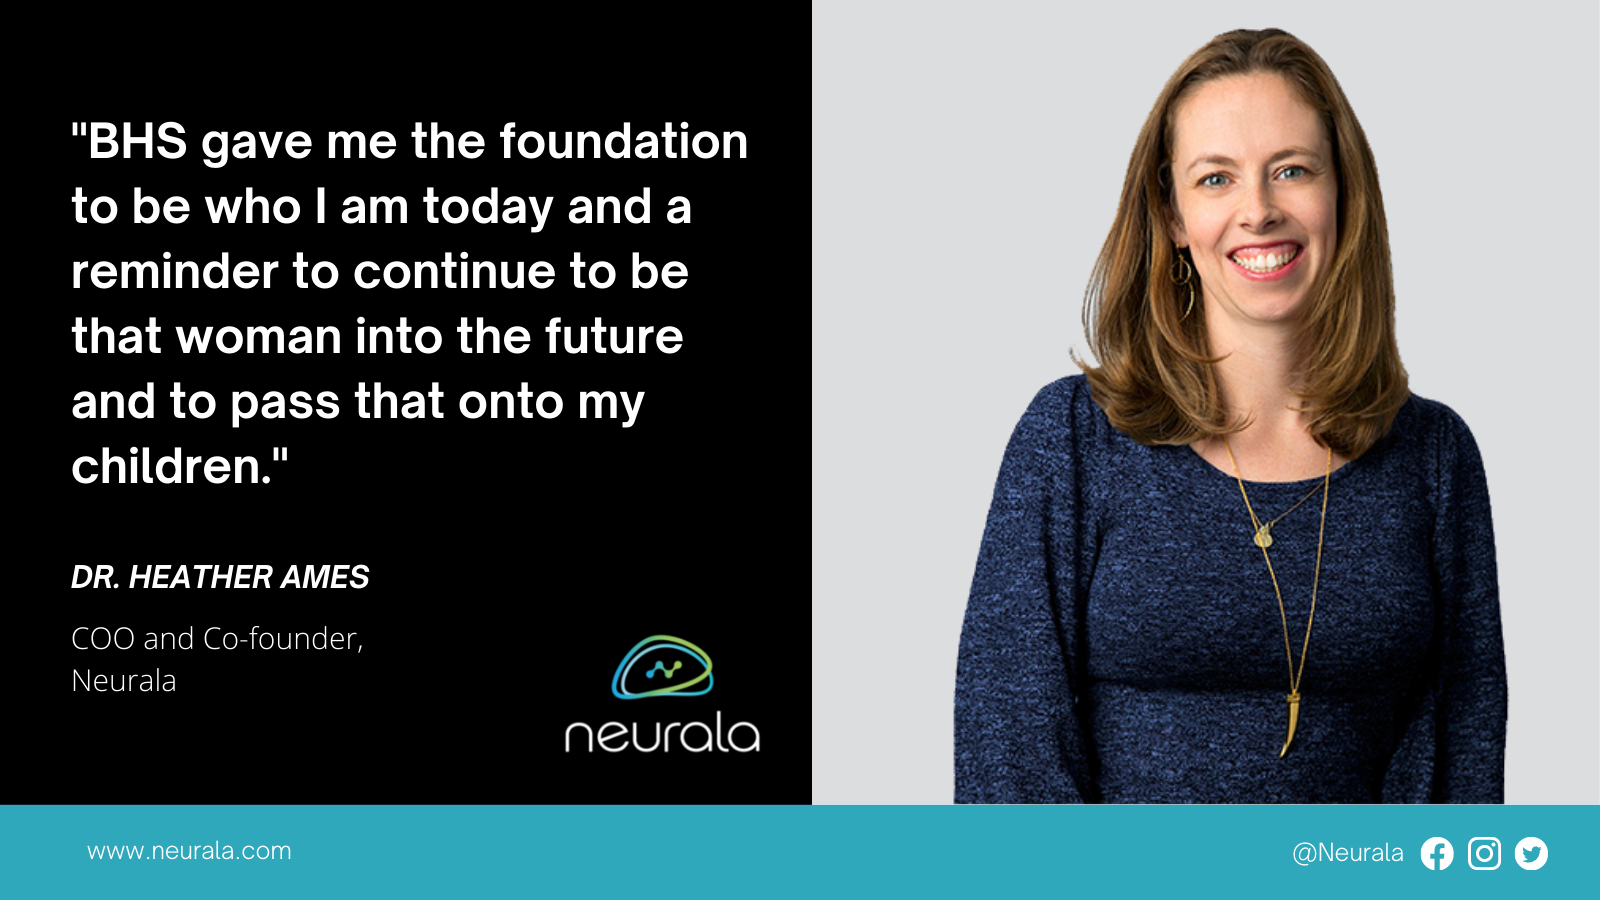 Neurala Co-Founder and COO Heather Ames honored by High School